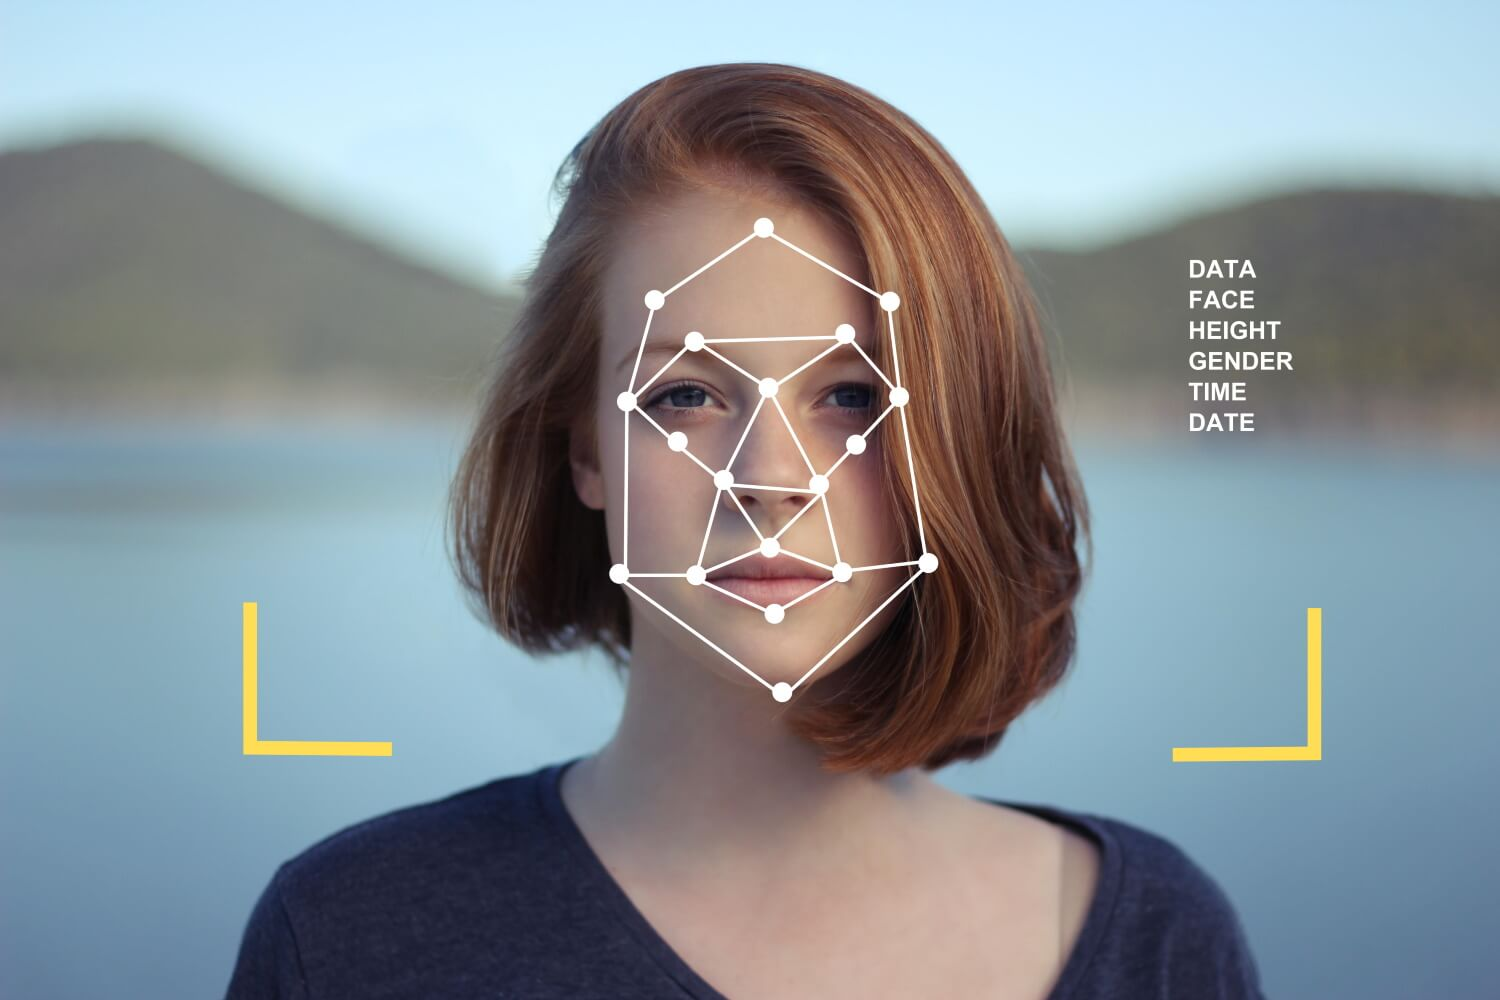 facial recognition, invasive of privacy rights